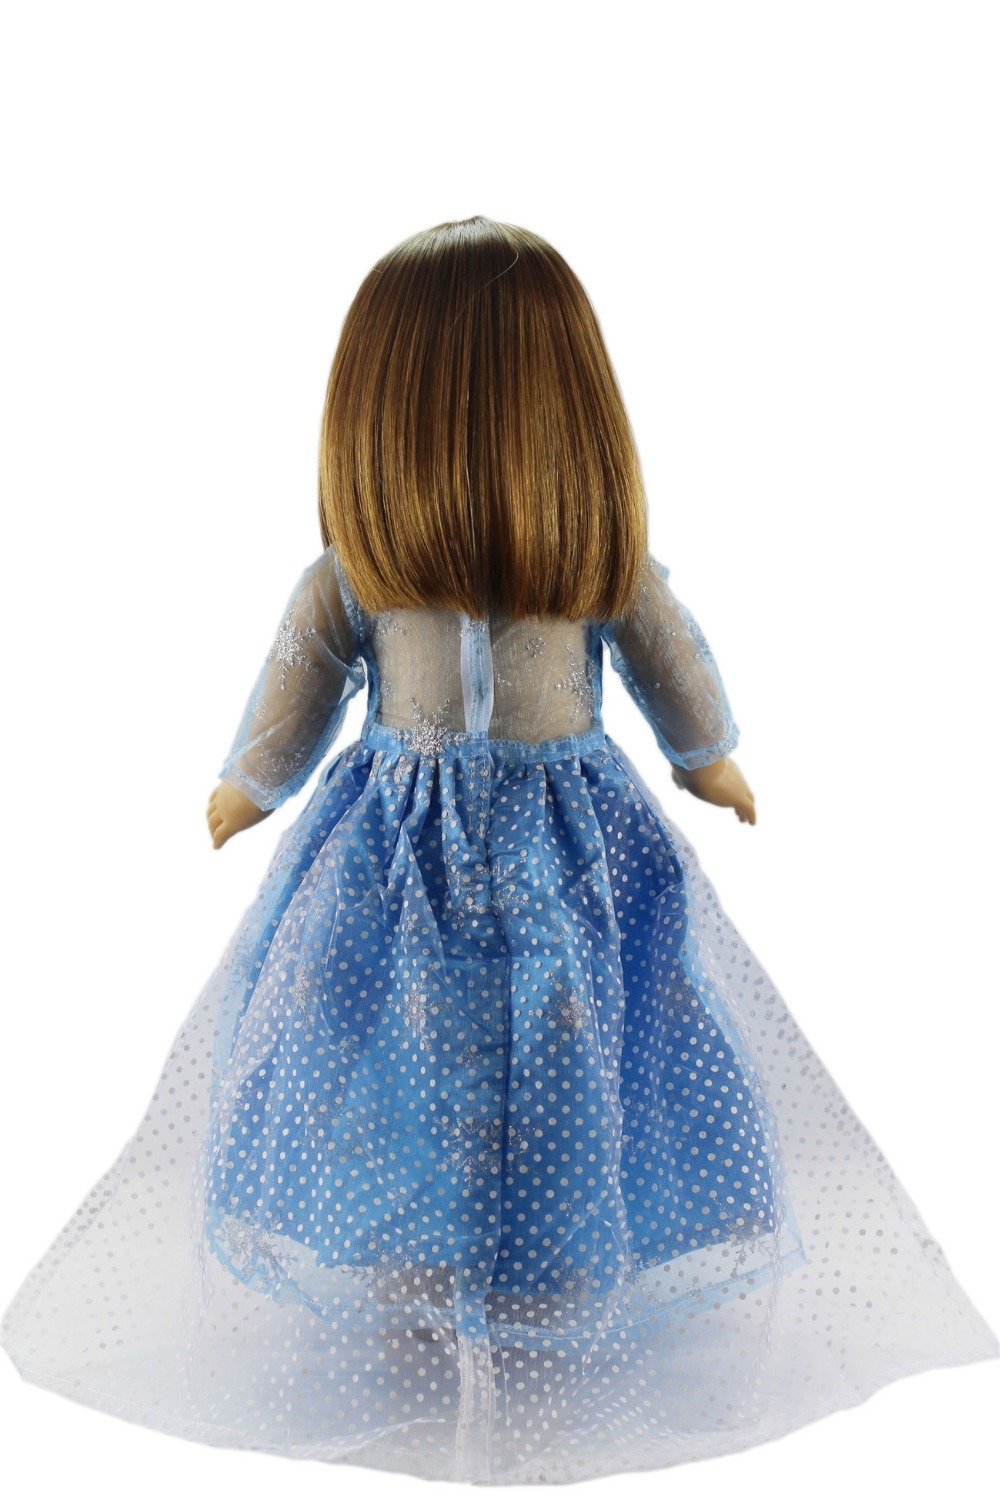 2 Set Anna/'s+Elsa/'s Dress Clothes for 18/'/' American Girl Doll Princess Costumes